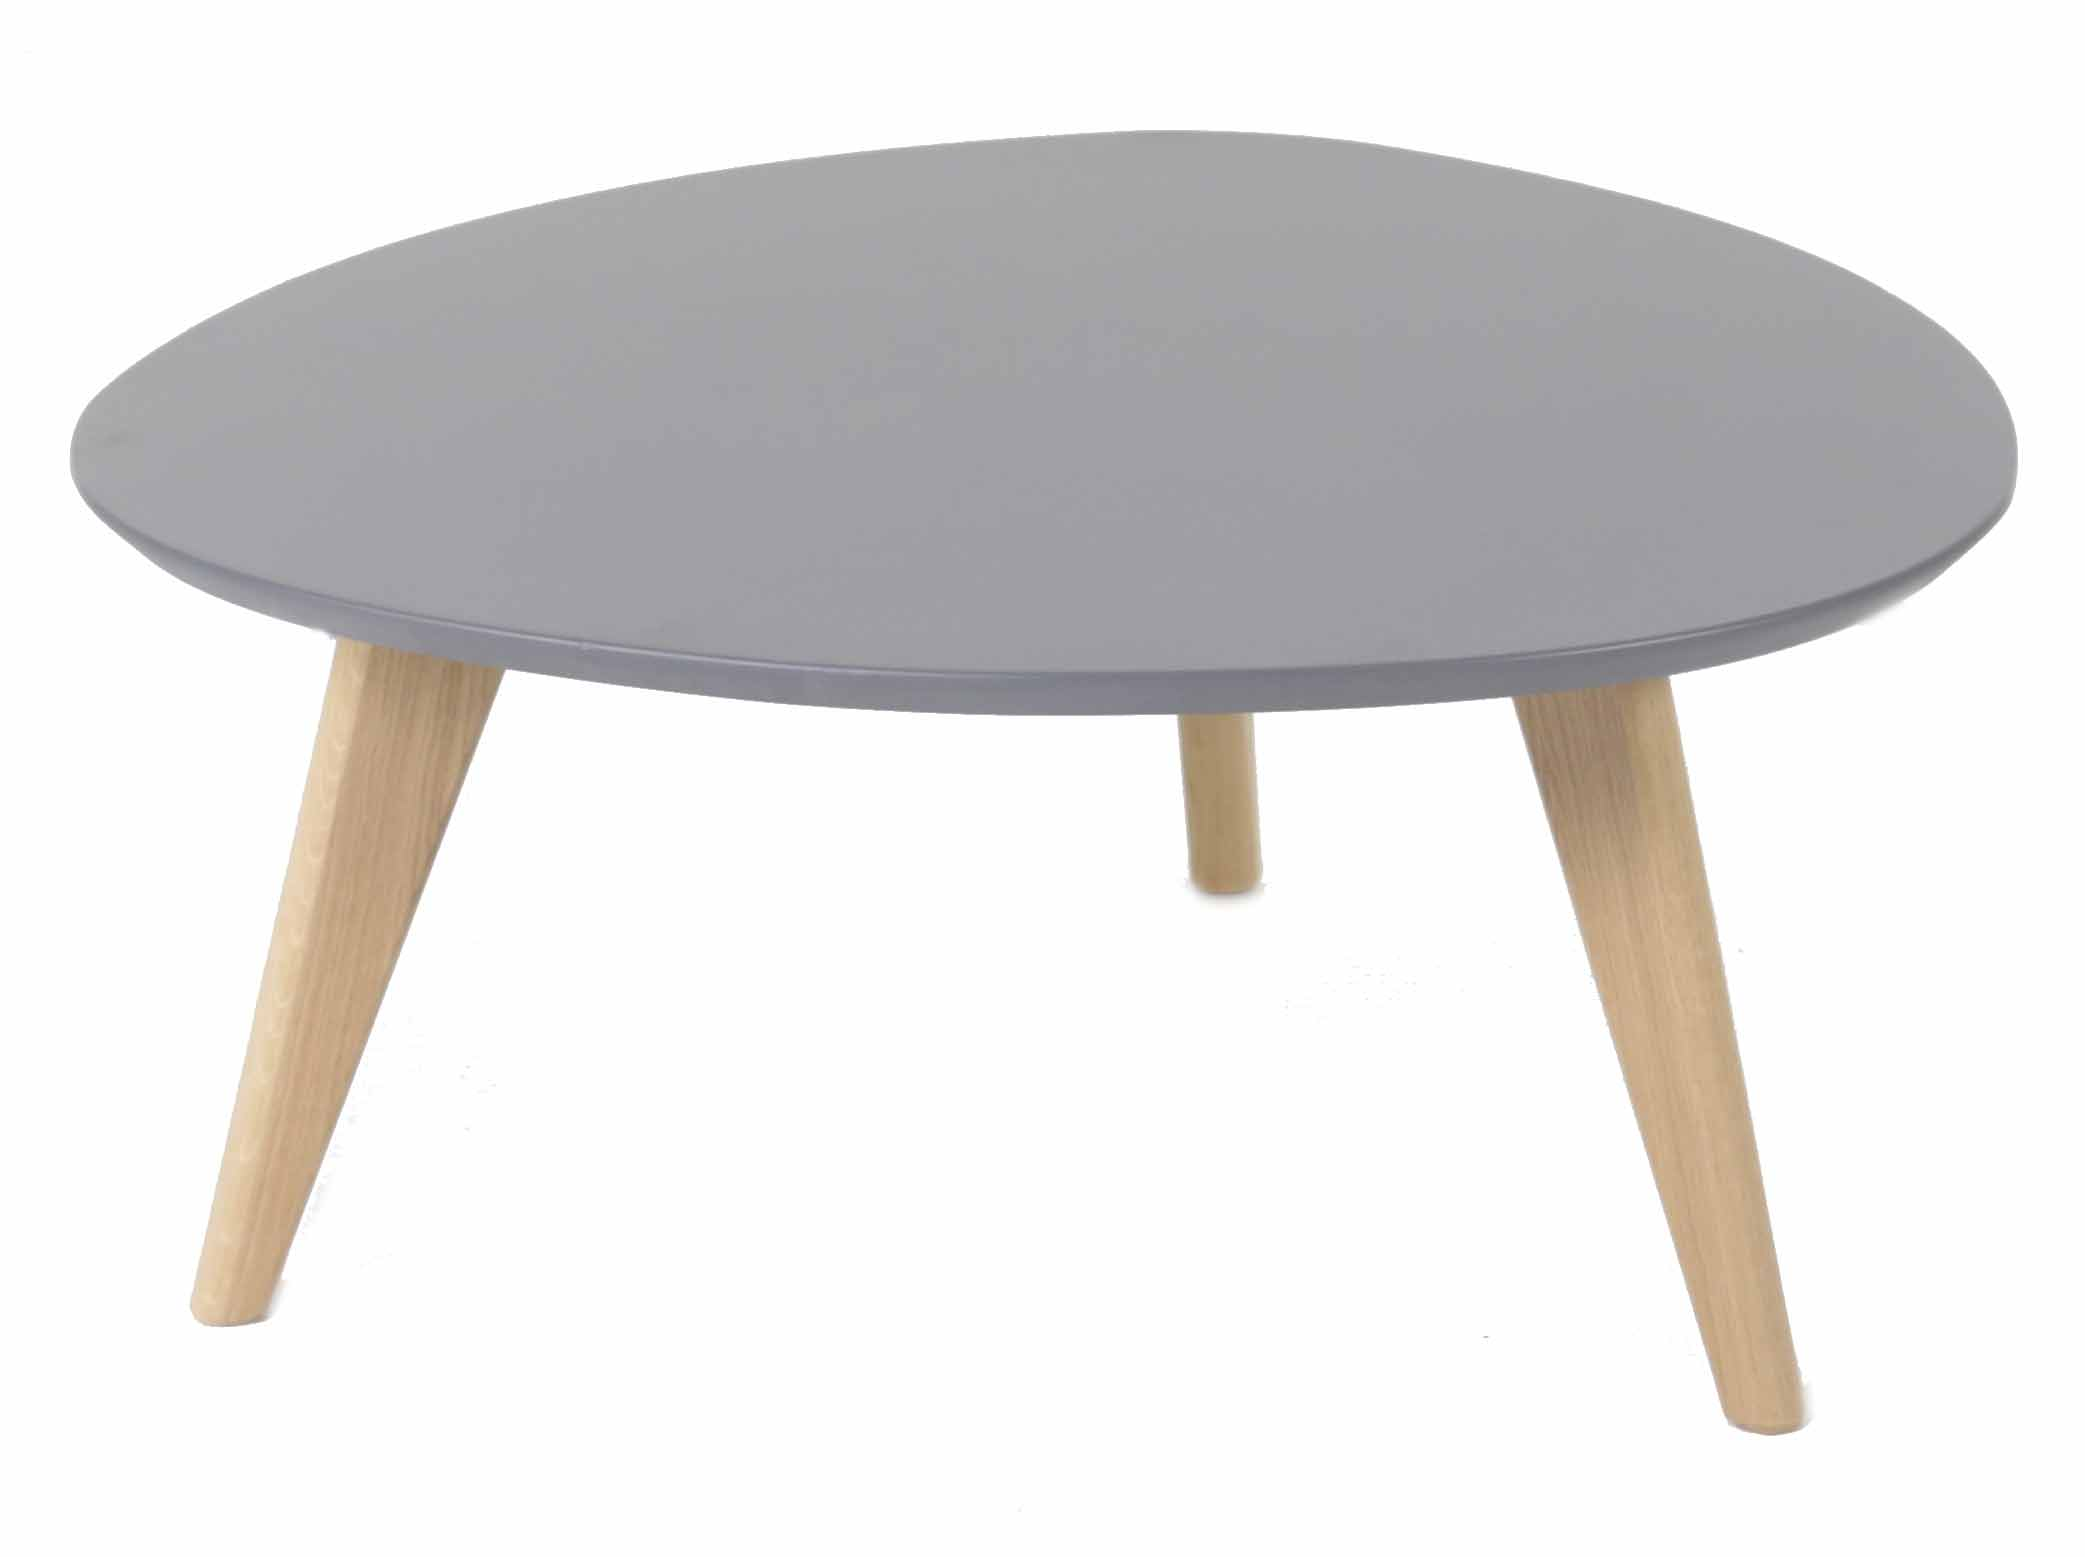 Sejour tables basse table basse ronde plateau gris for Table de sejour ronde